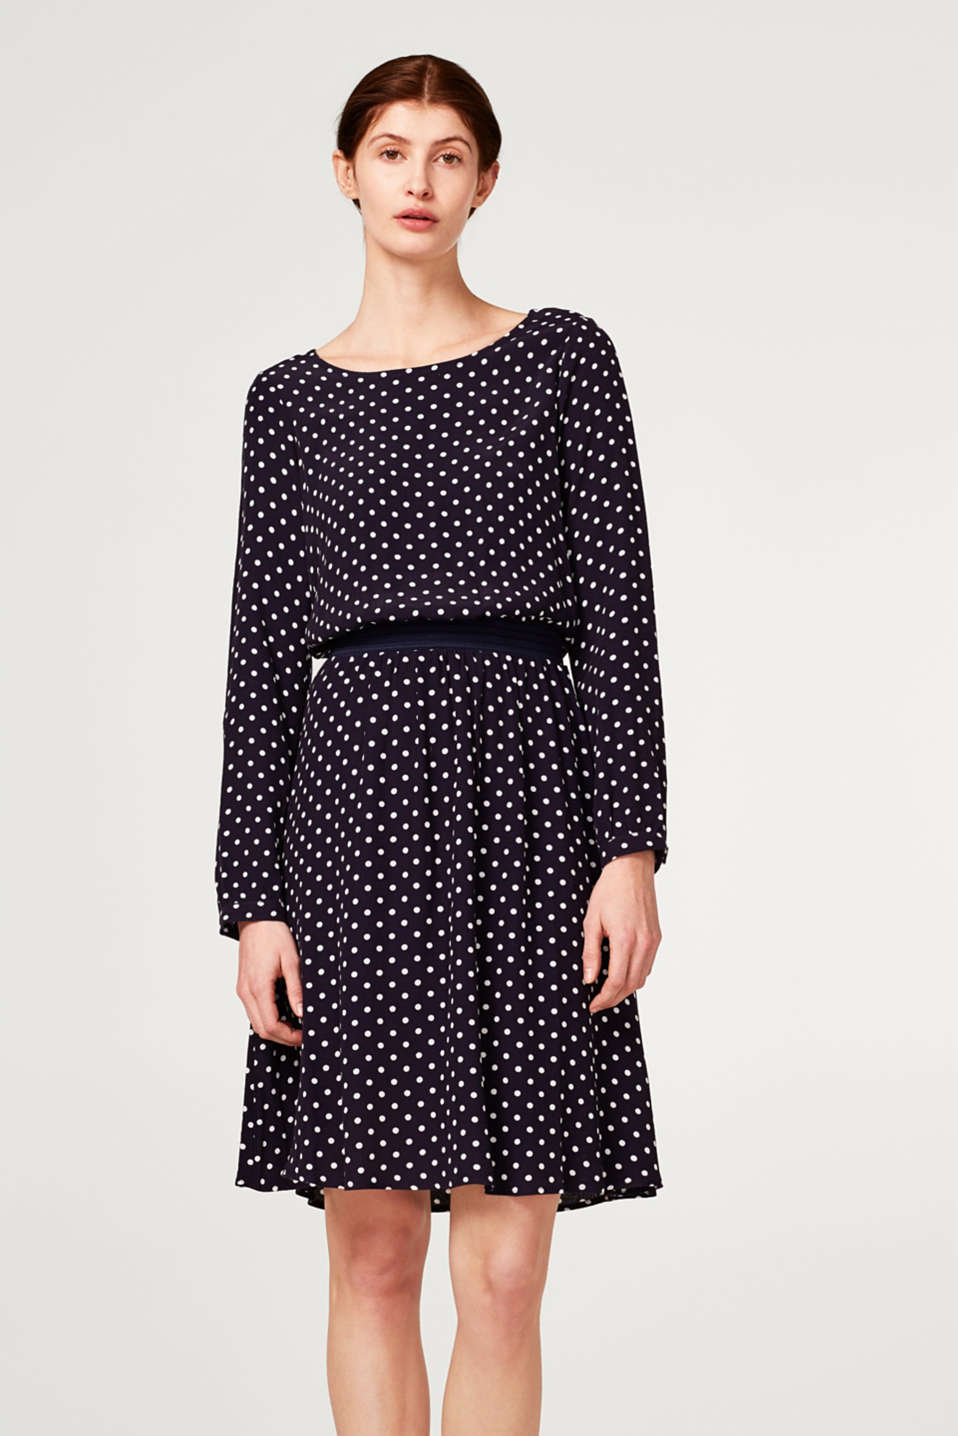 Esprit - Flowing dress with a graphic print